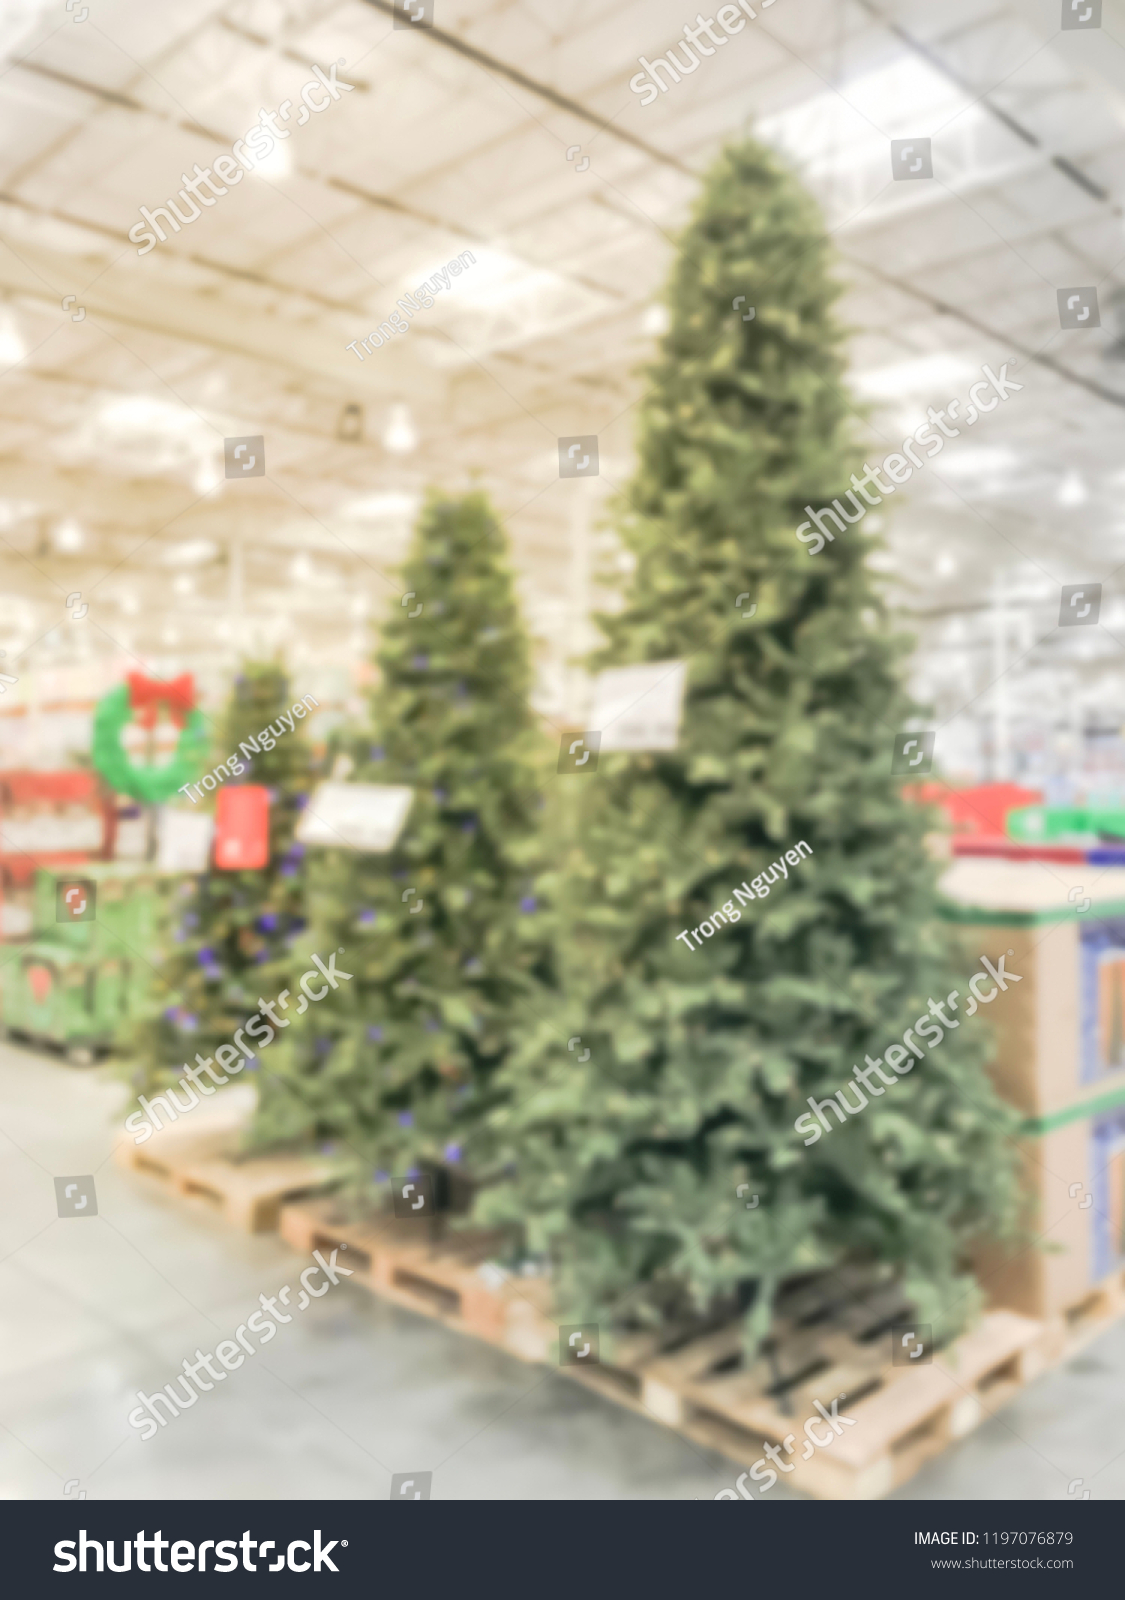 Motion blurred tall and big Christmas trees decoration at wholesale store.  Wreaths and strings of